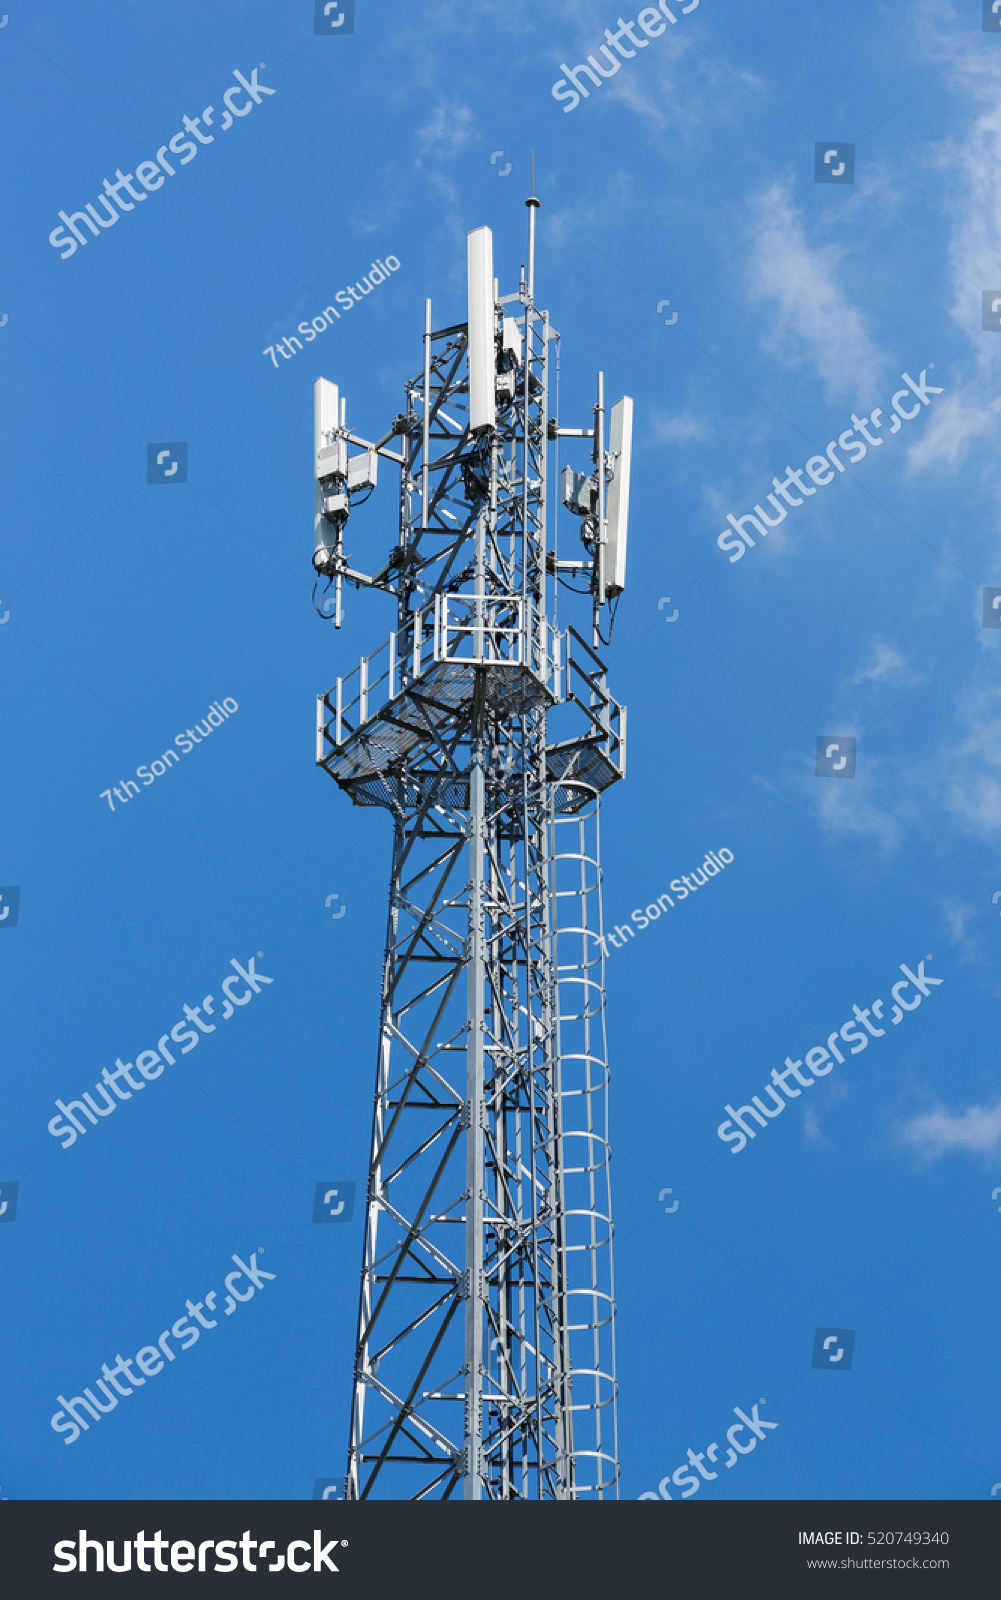 Antenna Repeater Tower On Blue Sky Stock Photo 520749340 - Shutterstock